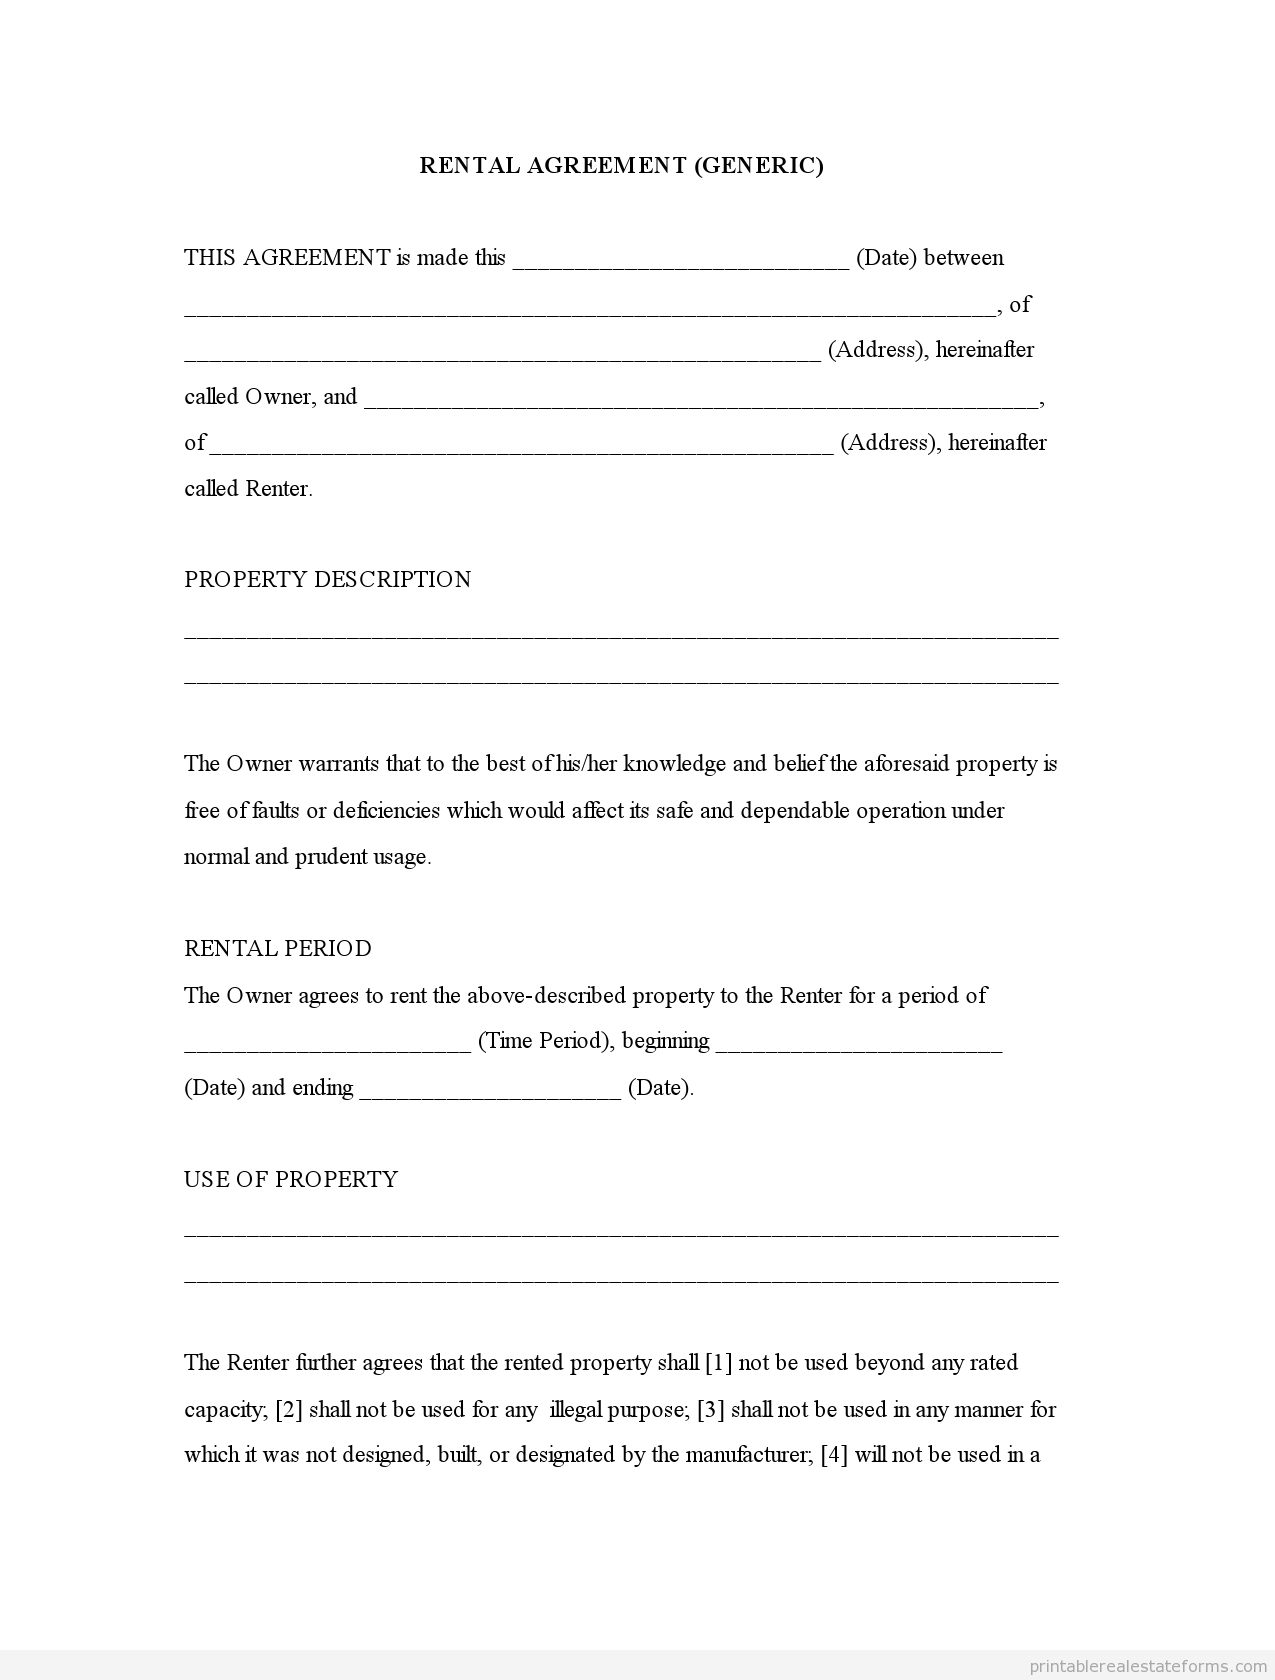 Free Printable Rental Agreement | Rental Agreement (Generic)0001 - Free Printable Lease Agreement Forms